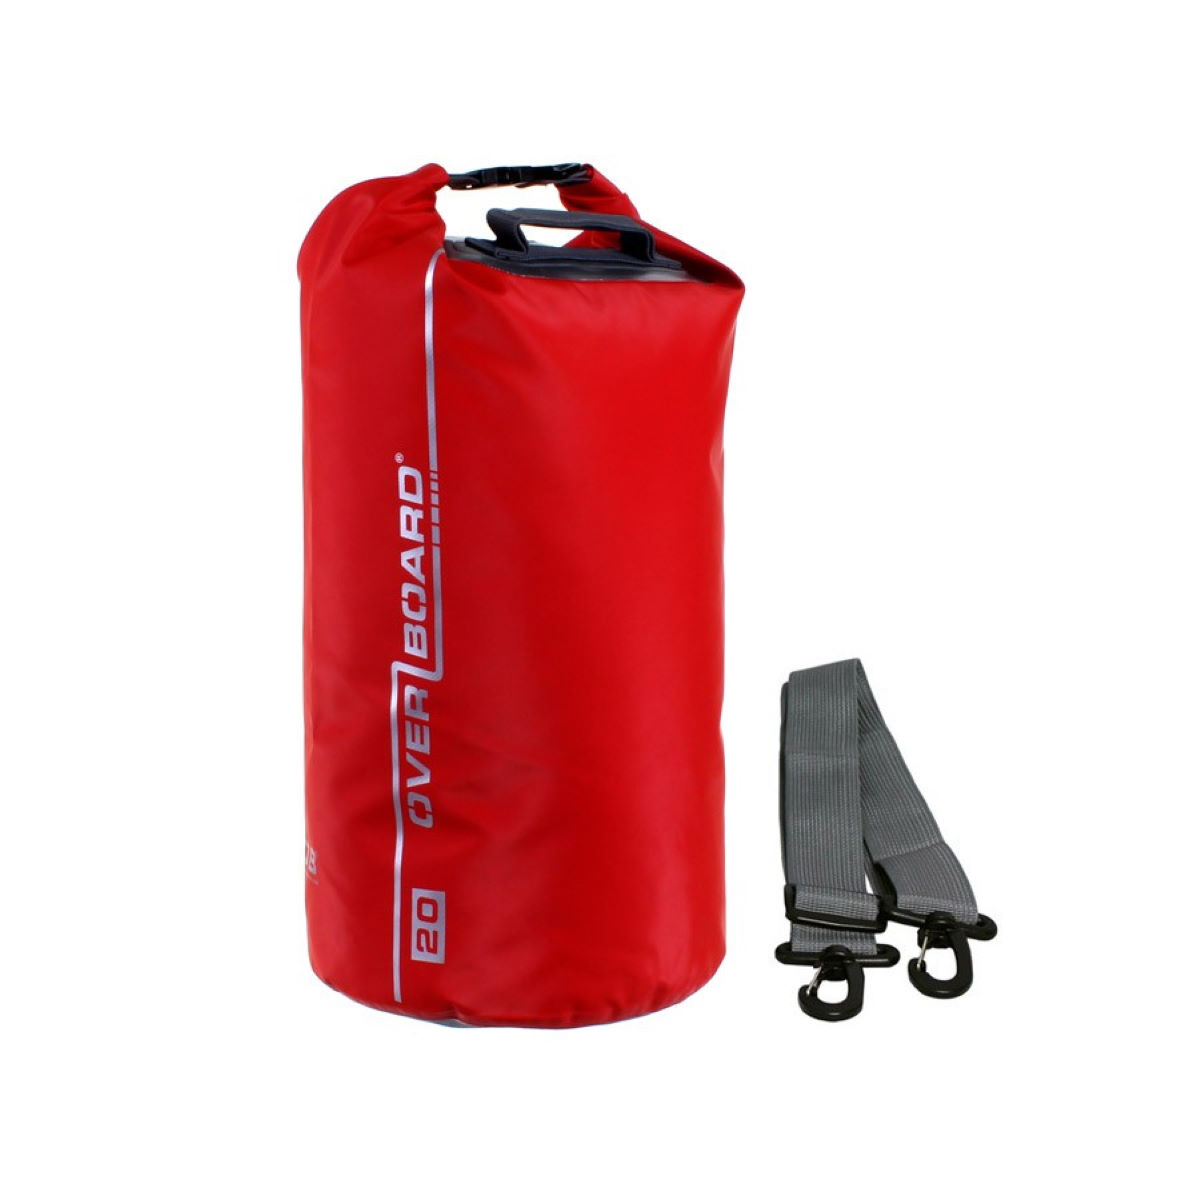 Sac Overboard Dry Tube (20 litres) - 20 Litres Red Sacs de voyage